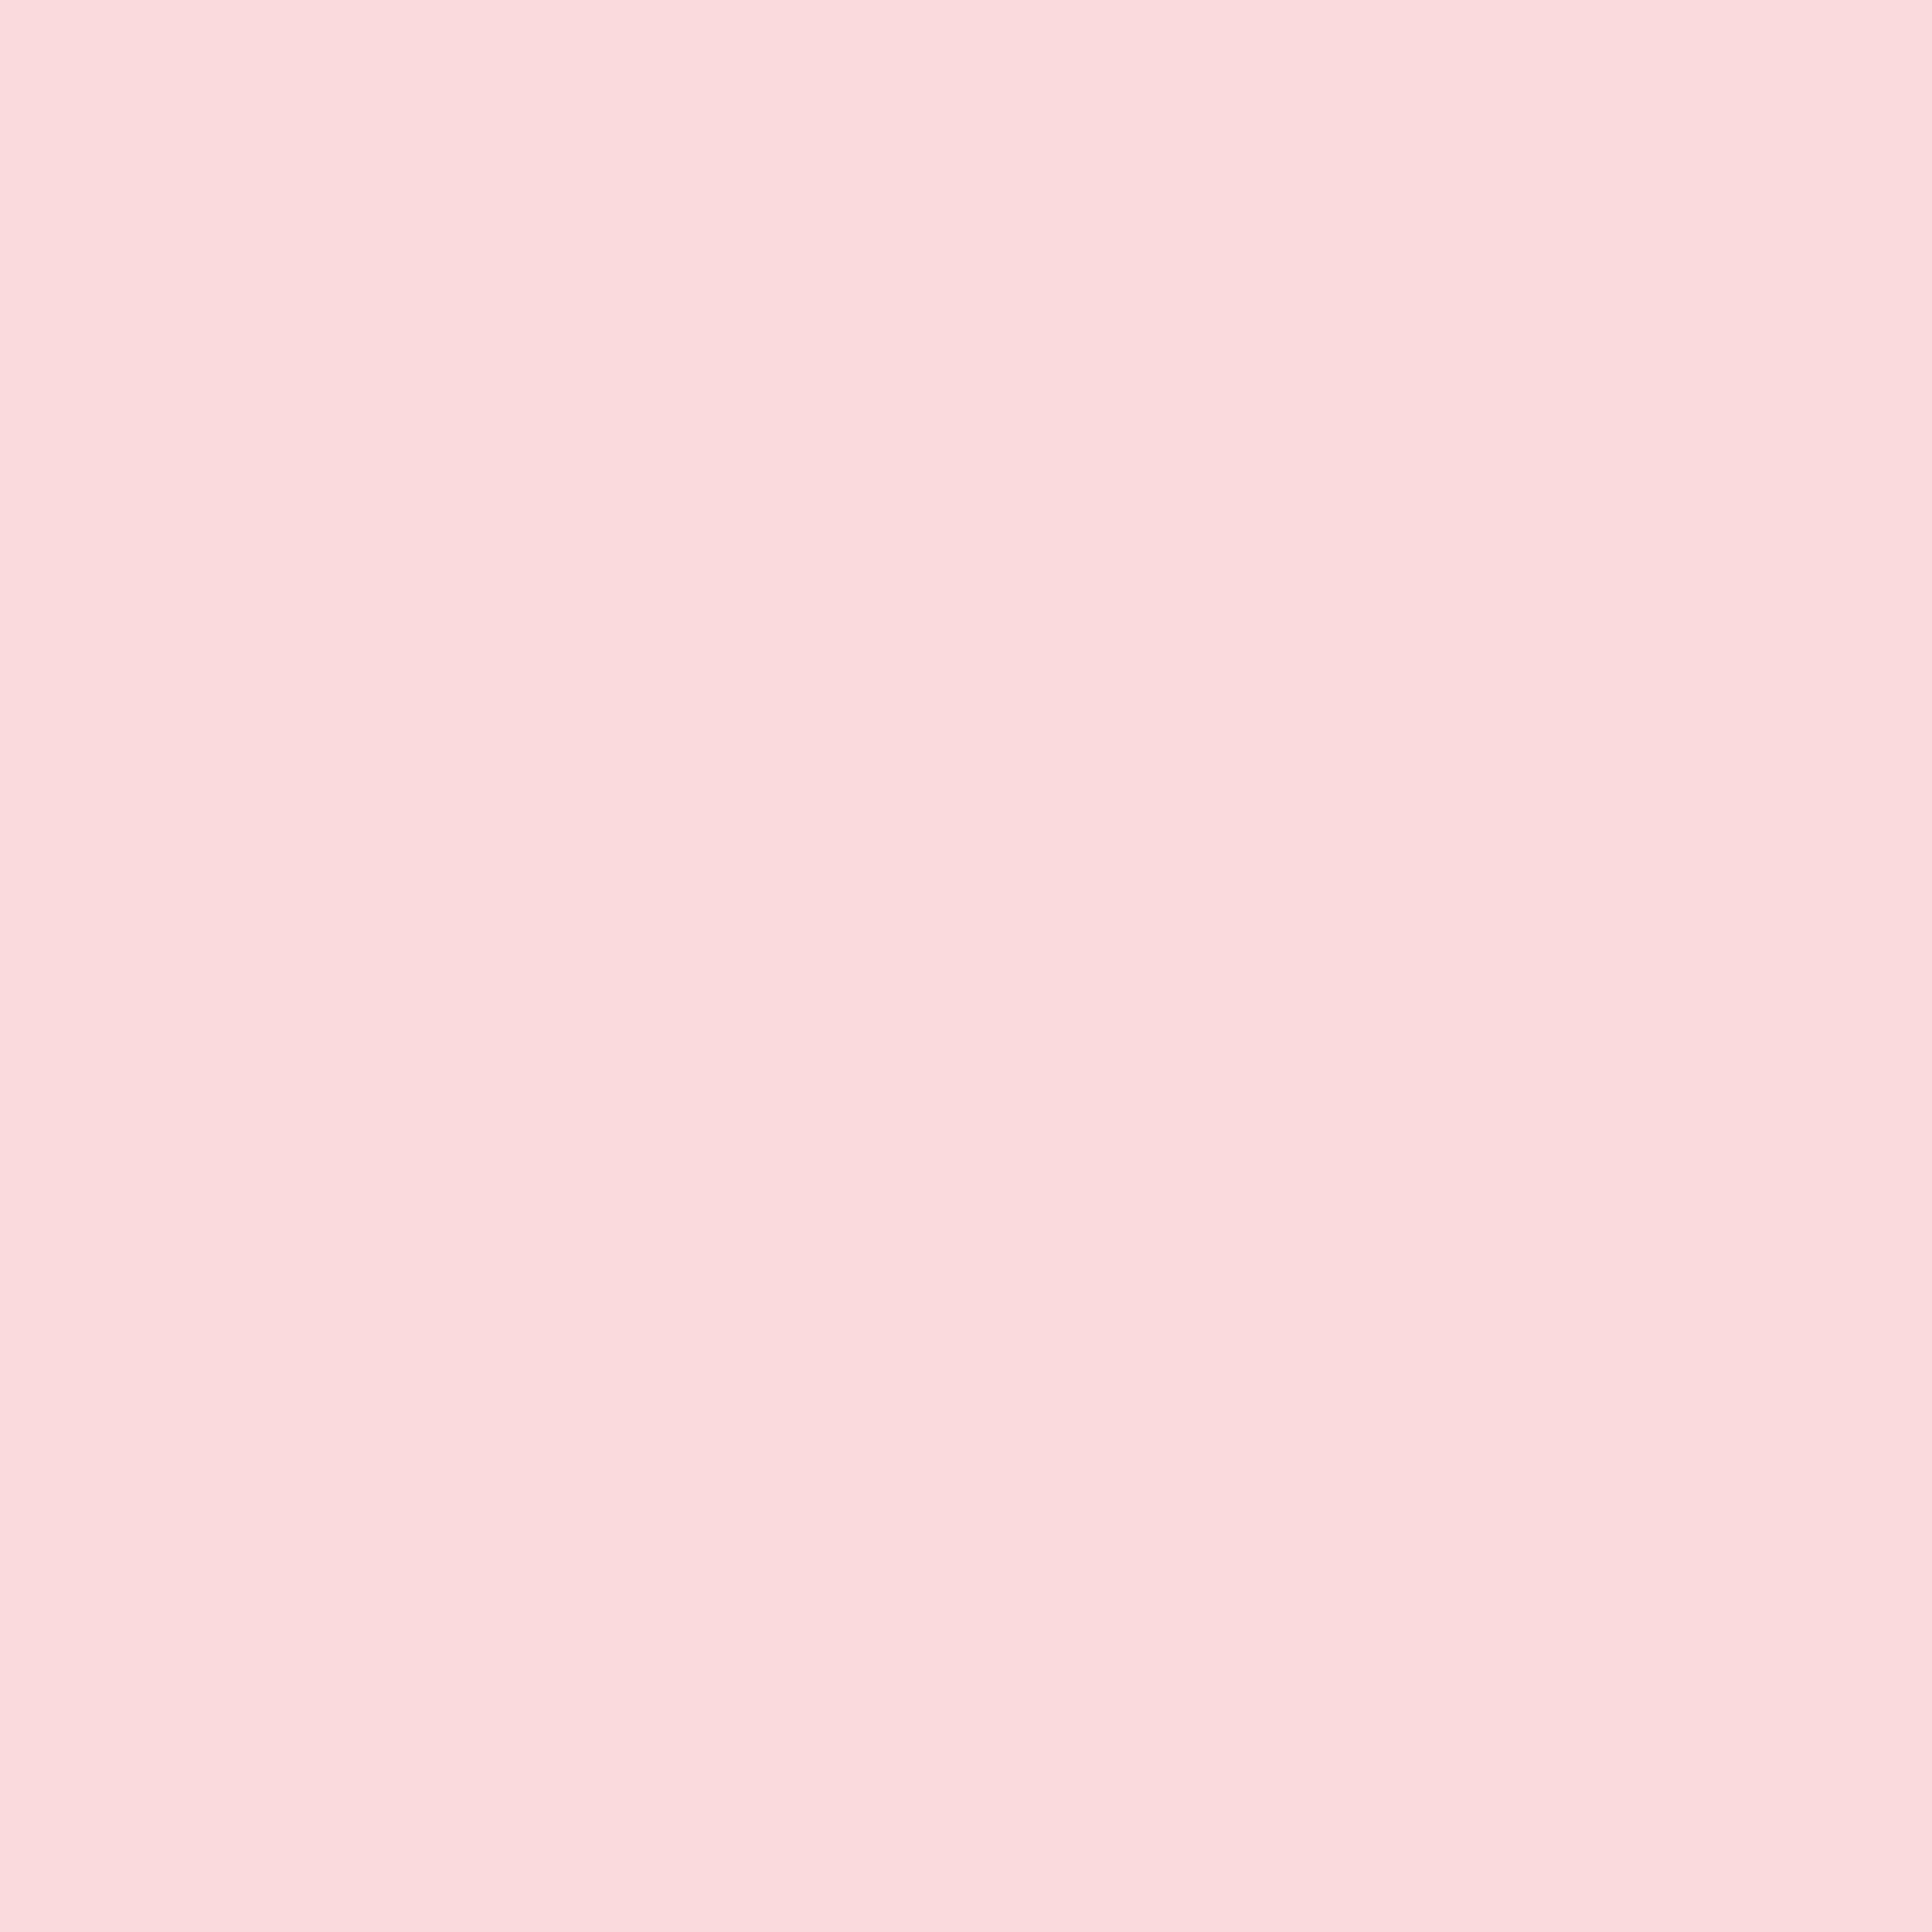 2048x2048 Pale Pink Solid Color Background